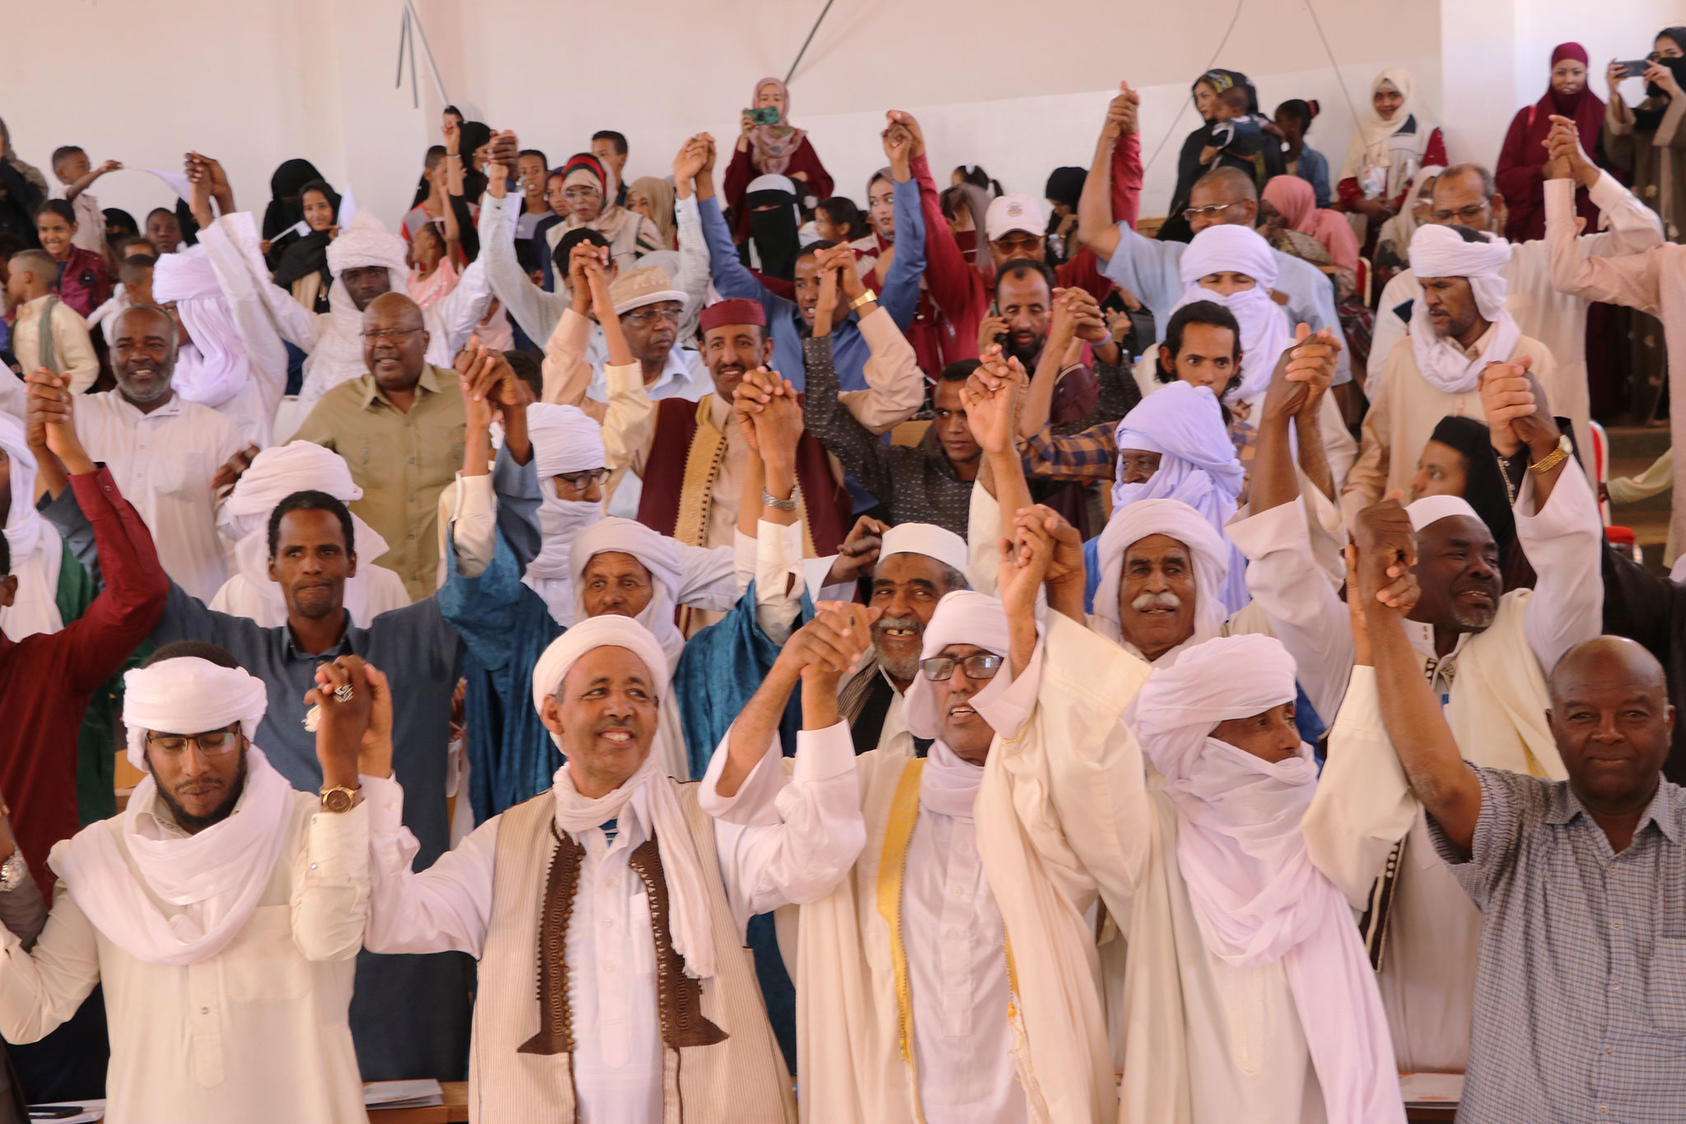 After signing a social pact against school violence, residents of the southern Libyan city of Ubari join hands during a USIP-sponsored Peace Day Celebration in September 2019.